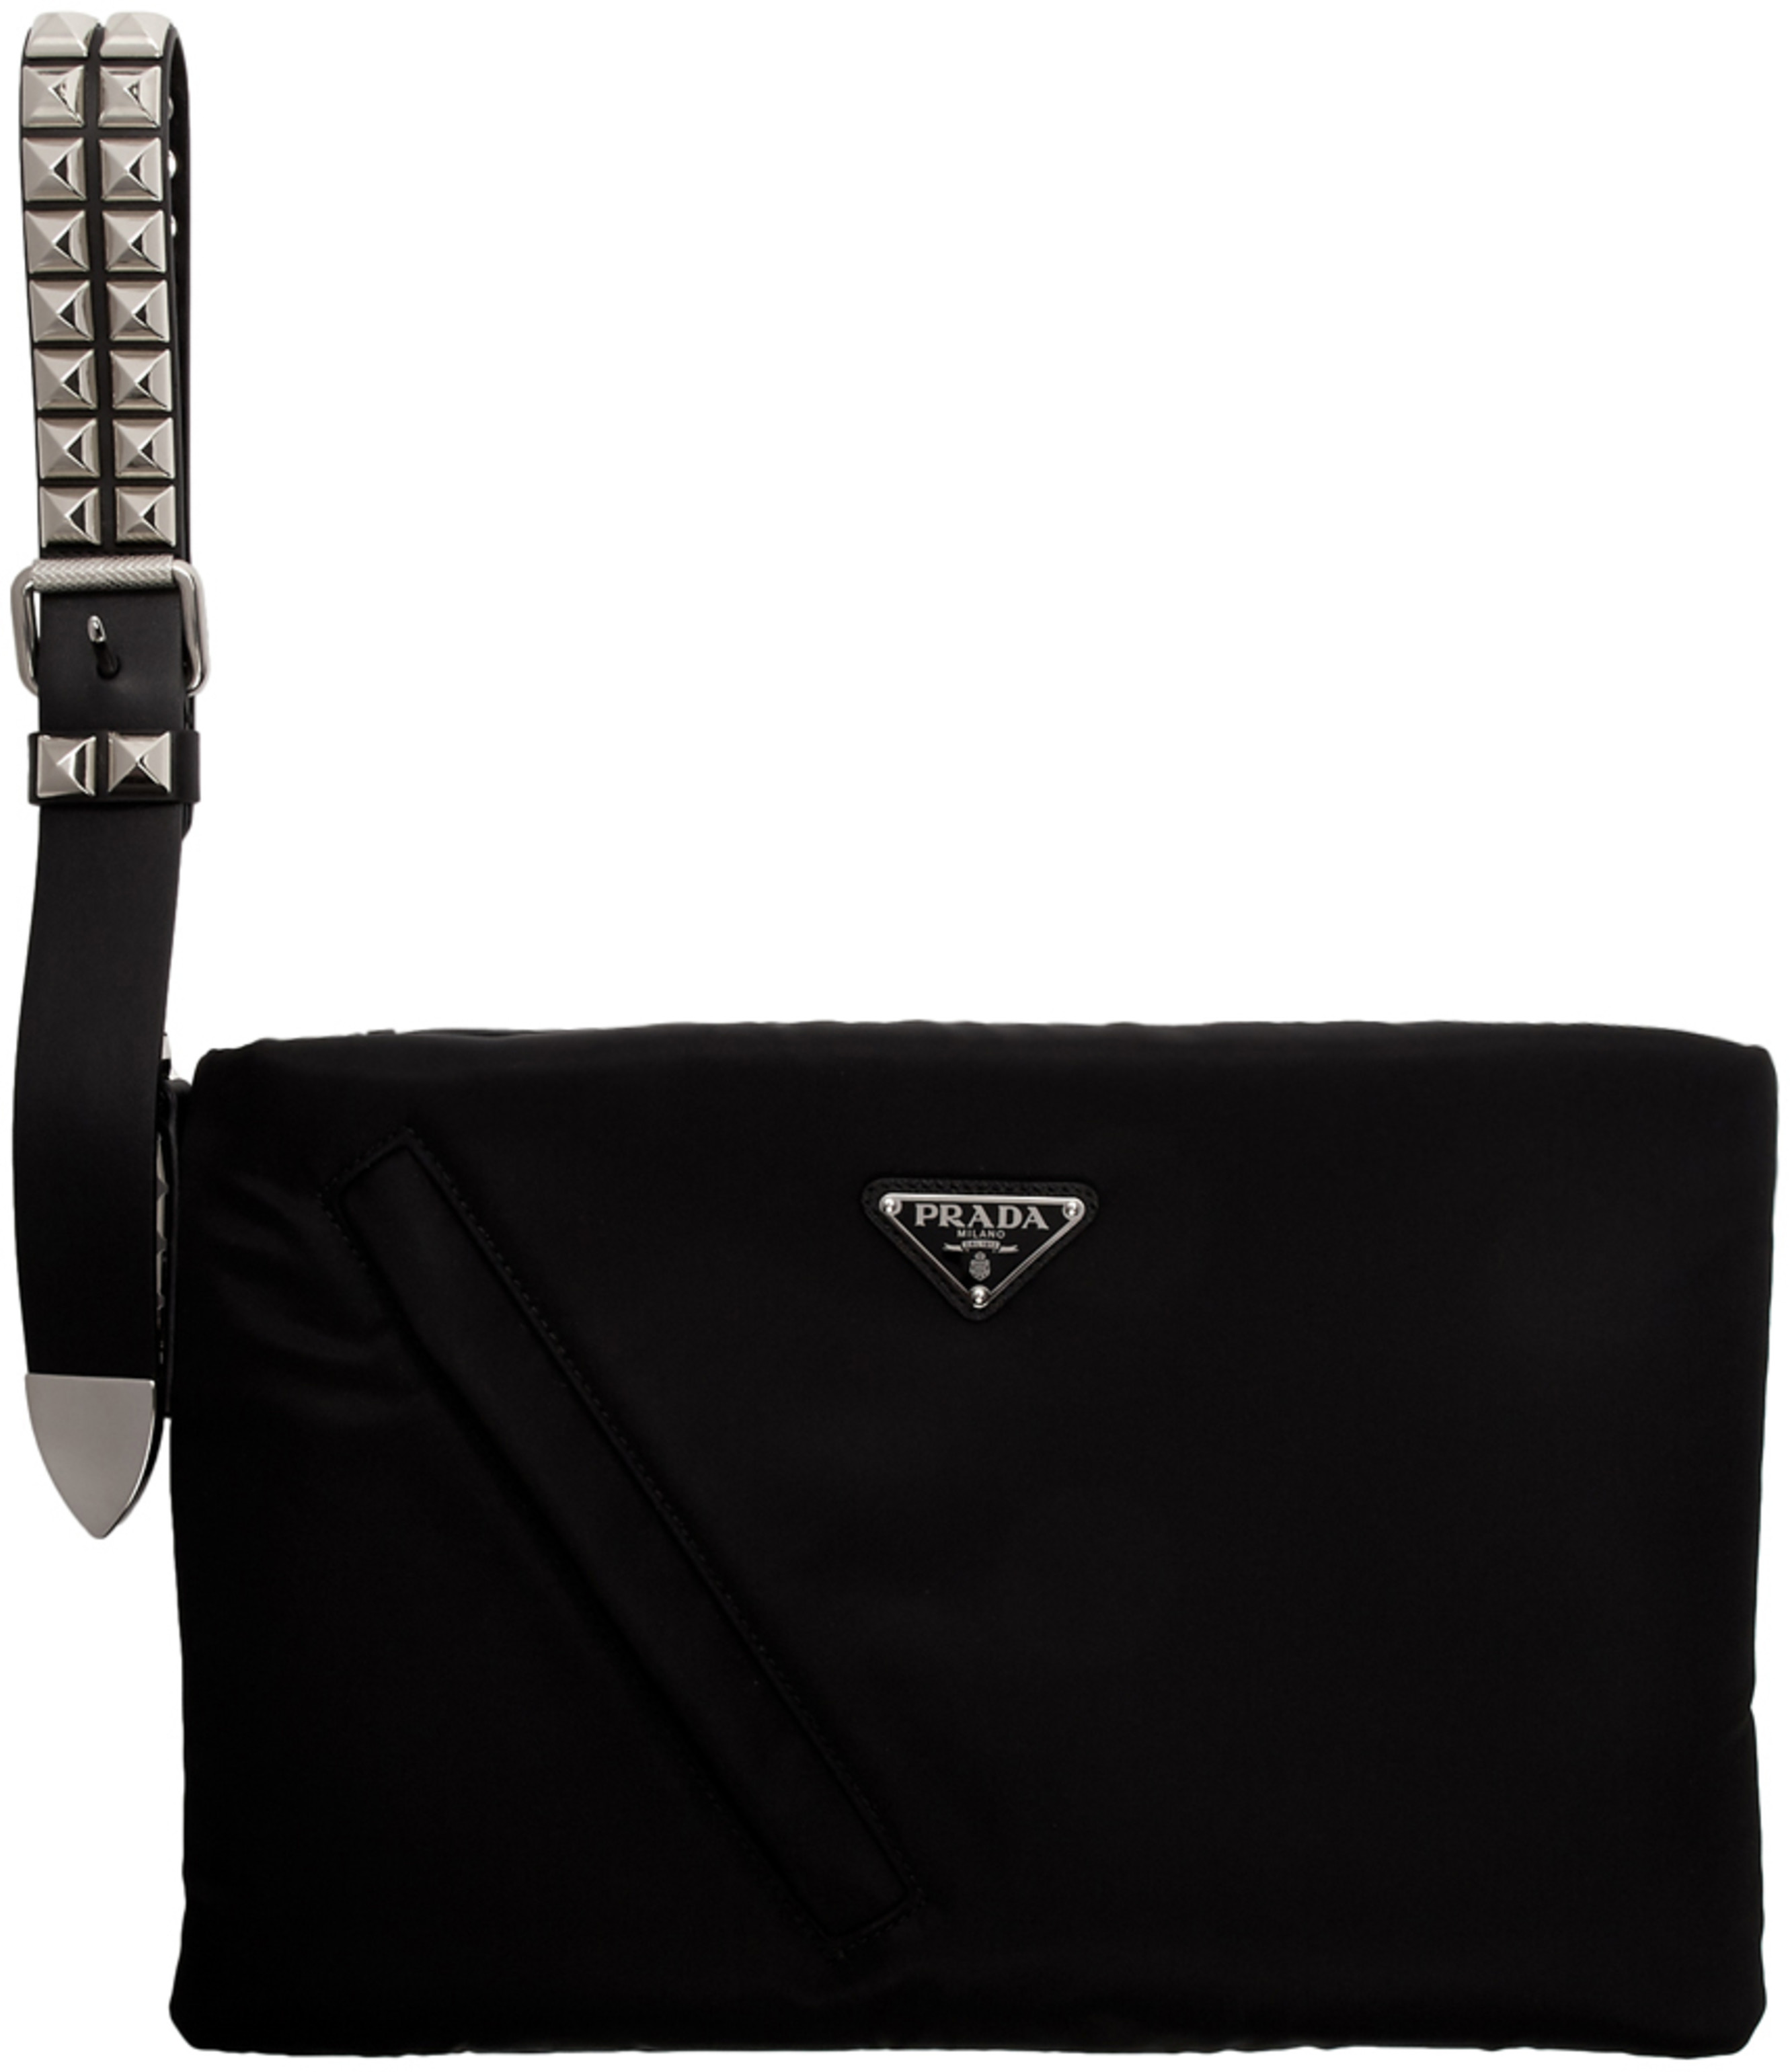 9d2d55eaacf6 Prada bags for Women